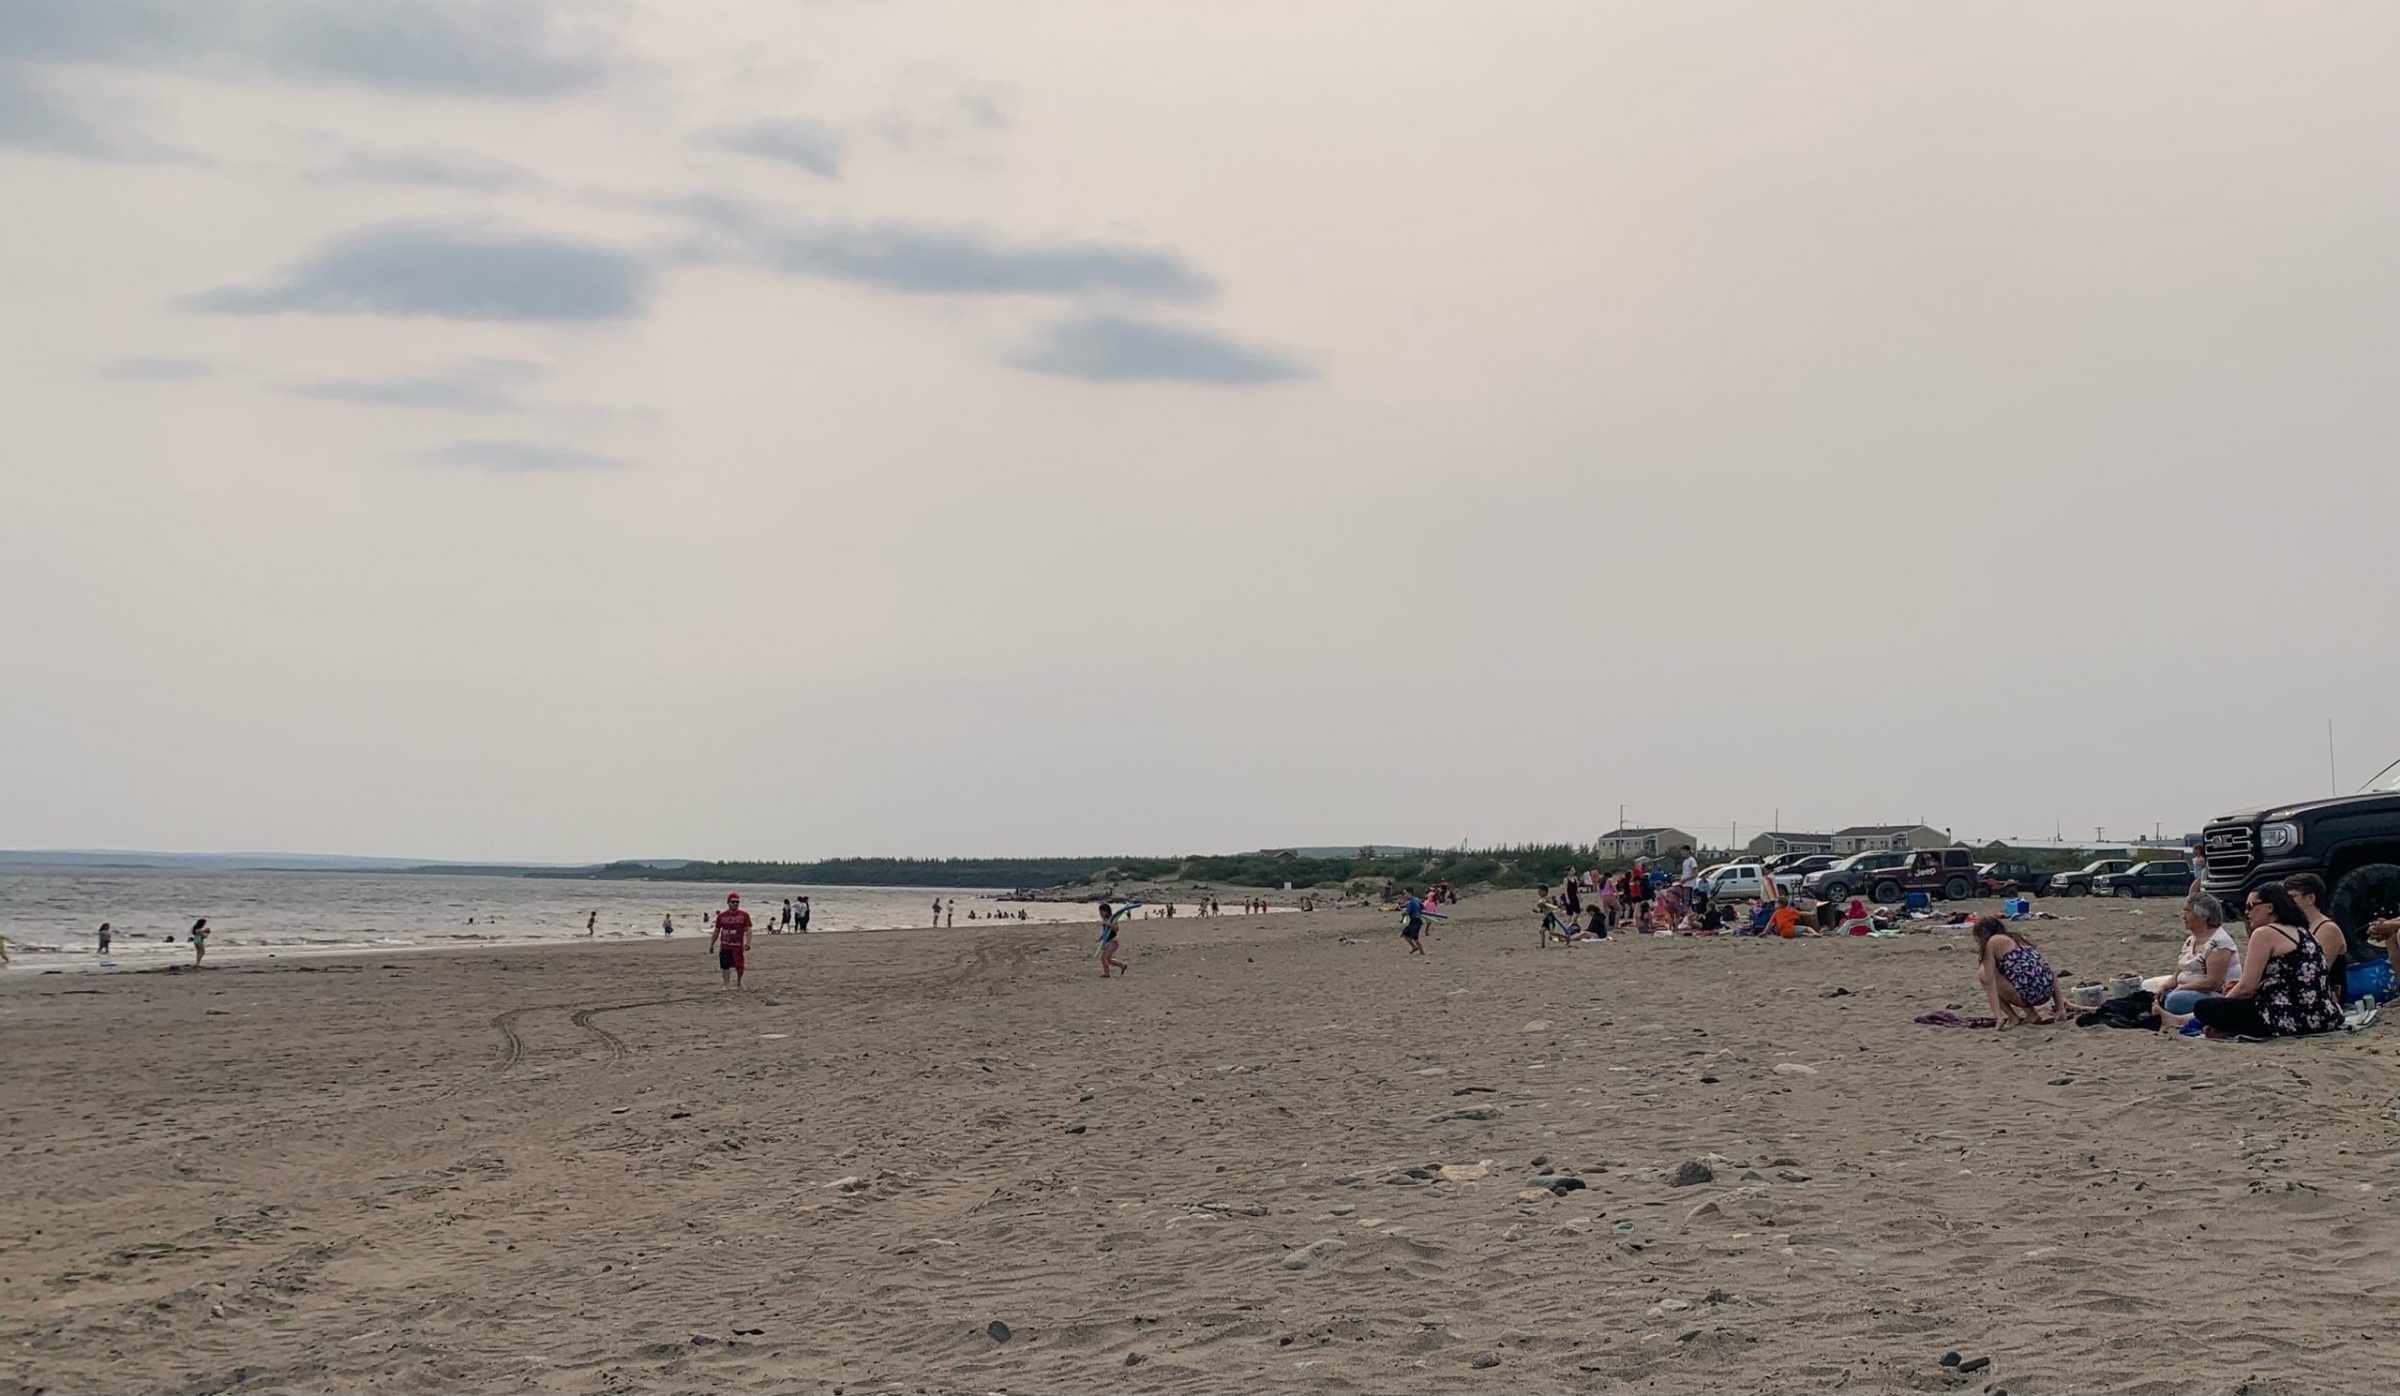 """Kuujjuaq residents hit the beach on Tuesday to cool down as temperatures reached 29 C. """"So many excited kids and their families cool down at the beach and play,"""" writes Malaya Qaunirq Chapman. (Photo by Malaya Qaunirq Chapman)"""